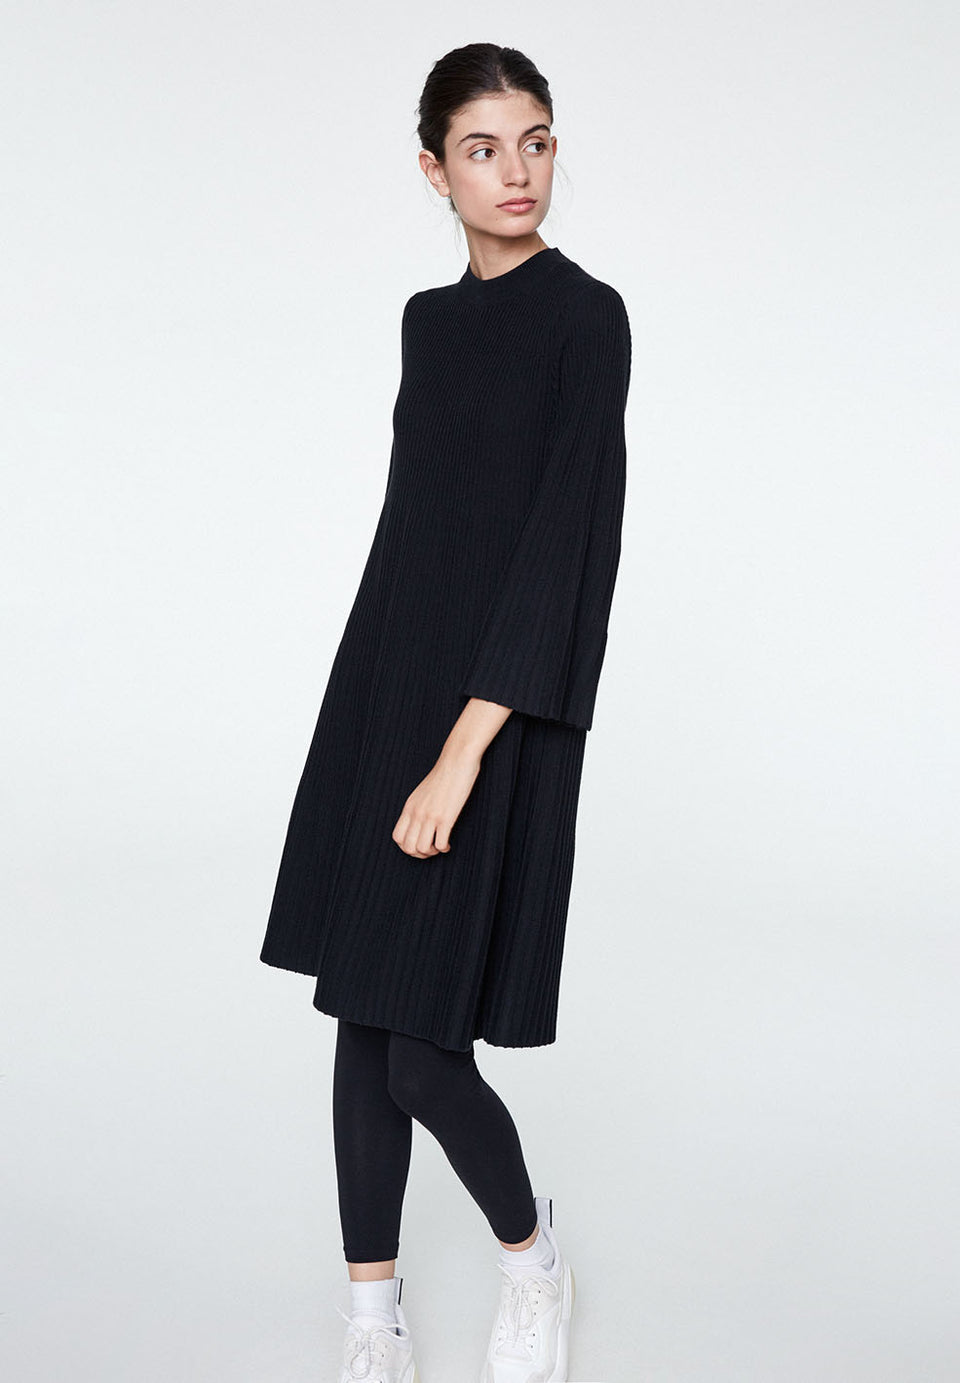 Liria Dress in Black